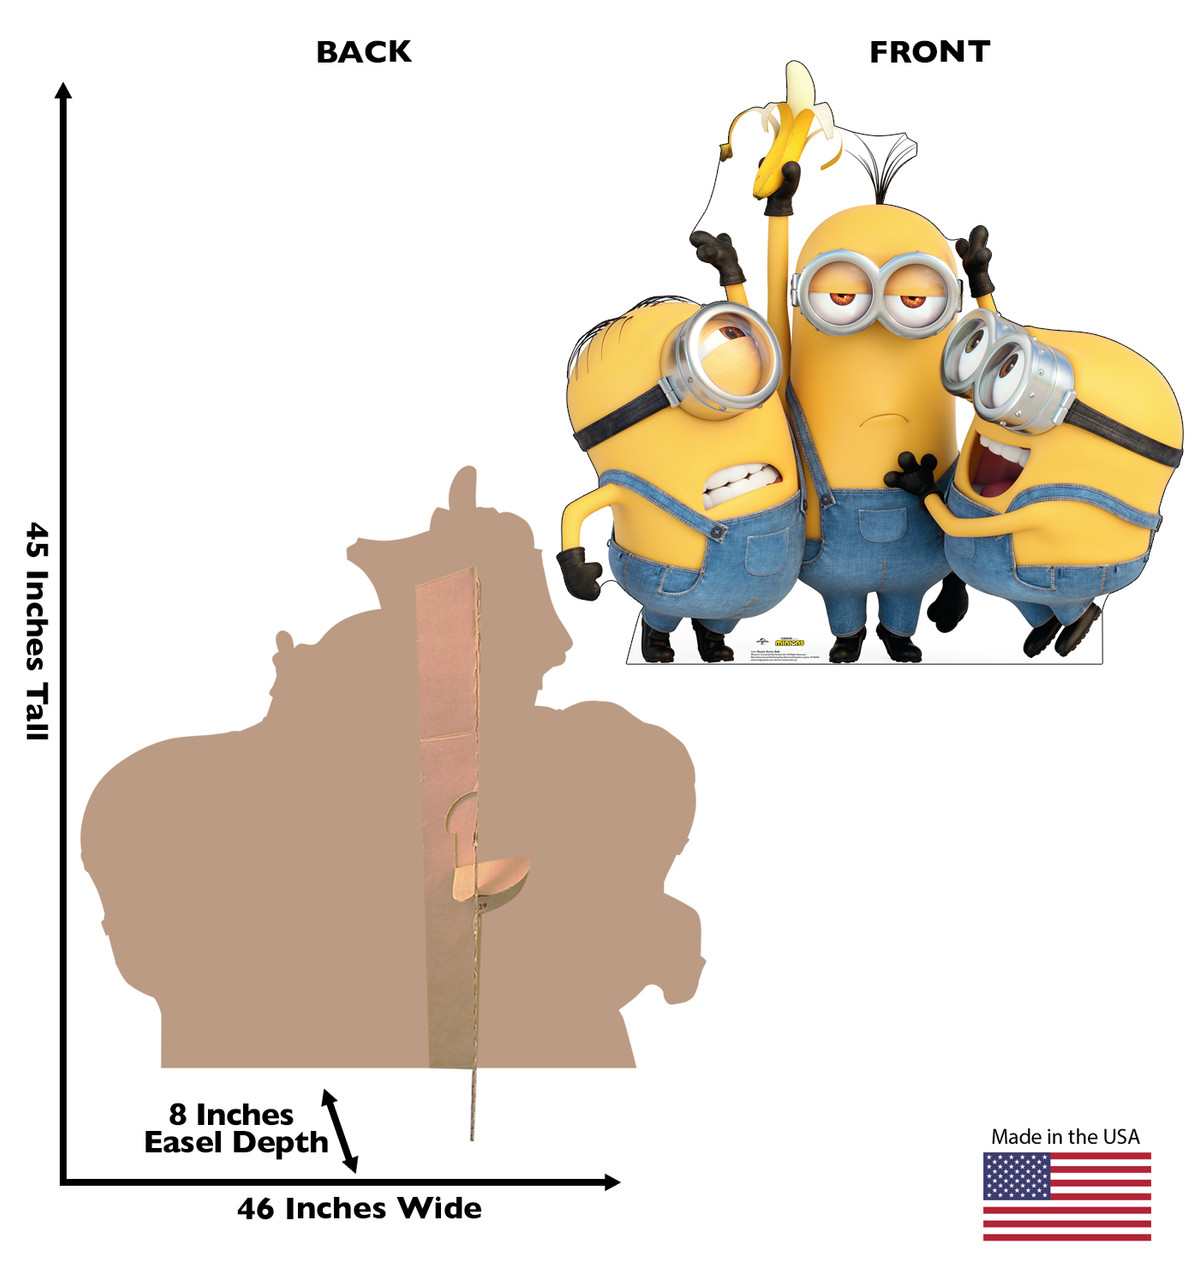 Life-size cardboard standee of Stuart, Kevin & Bob from The Minions with back and front dimensions.